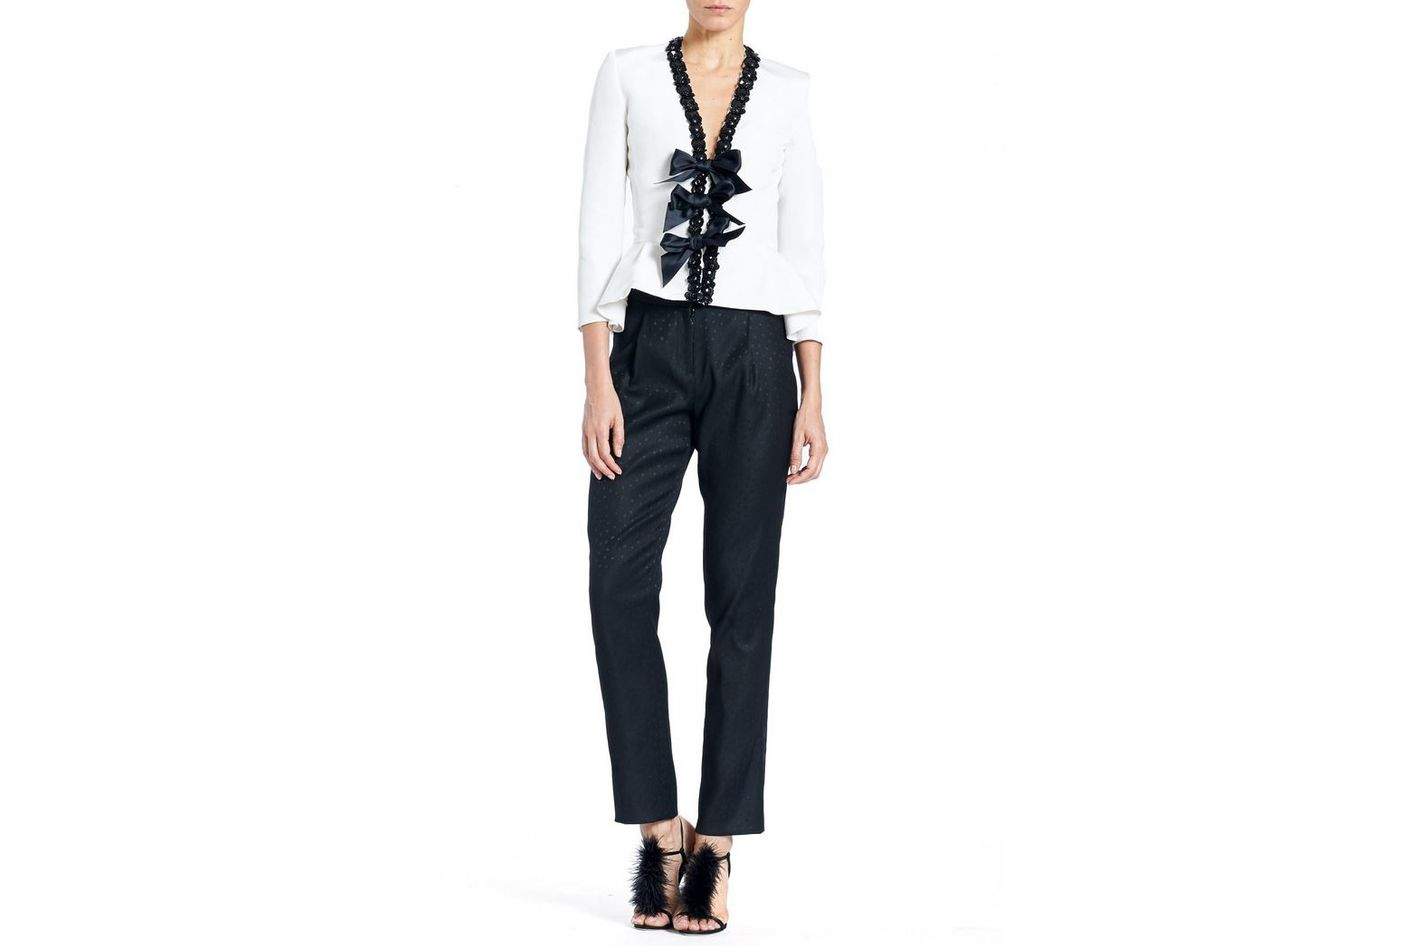 Carolina Herrera Embellished Peplum Jacket